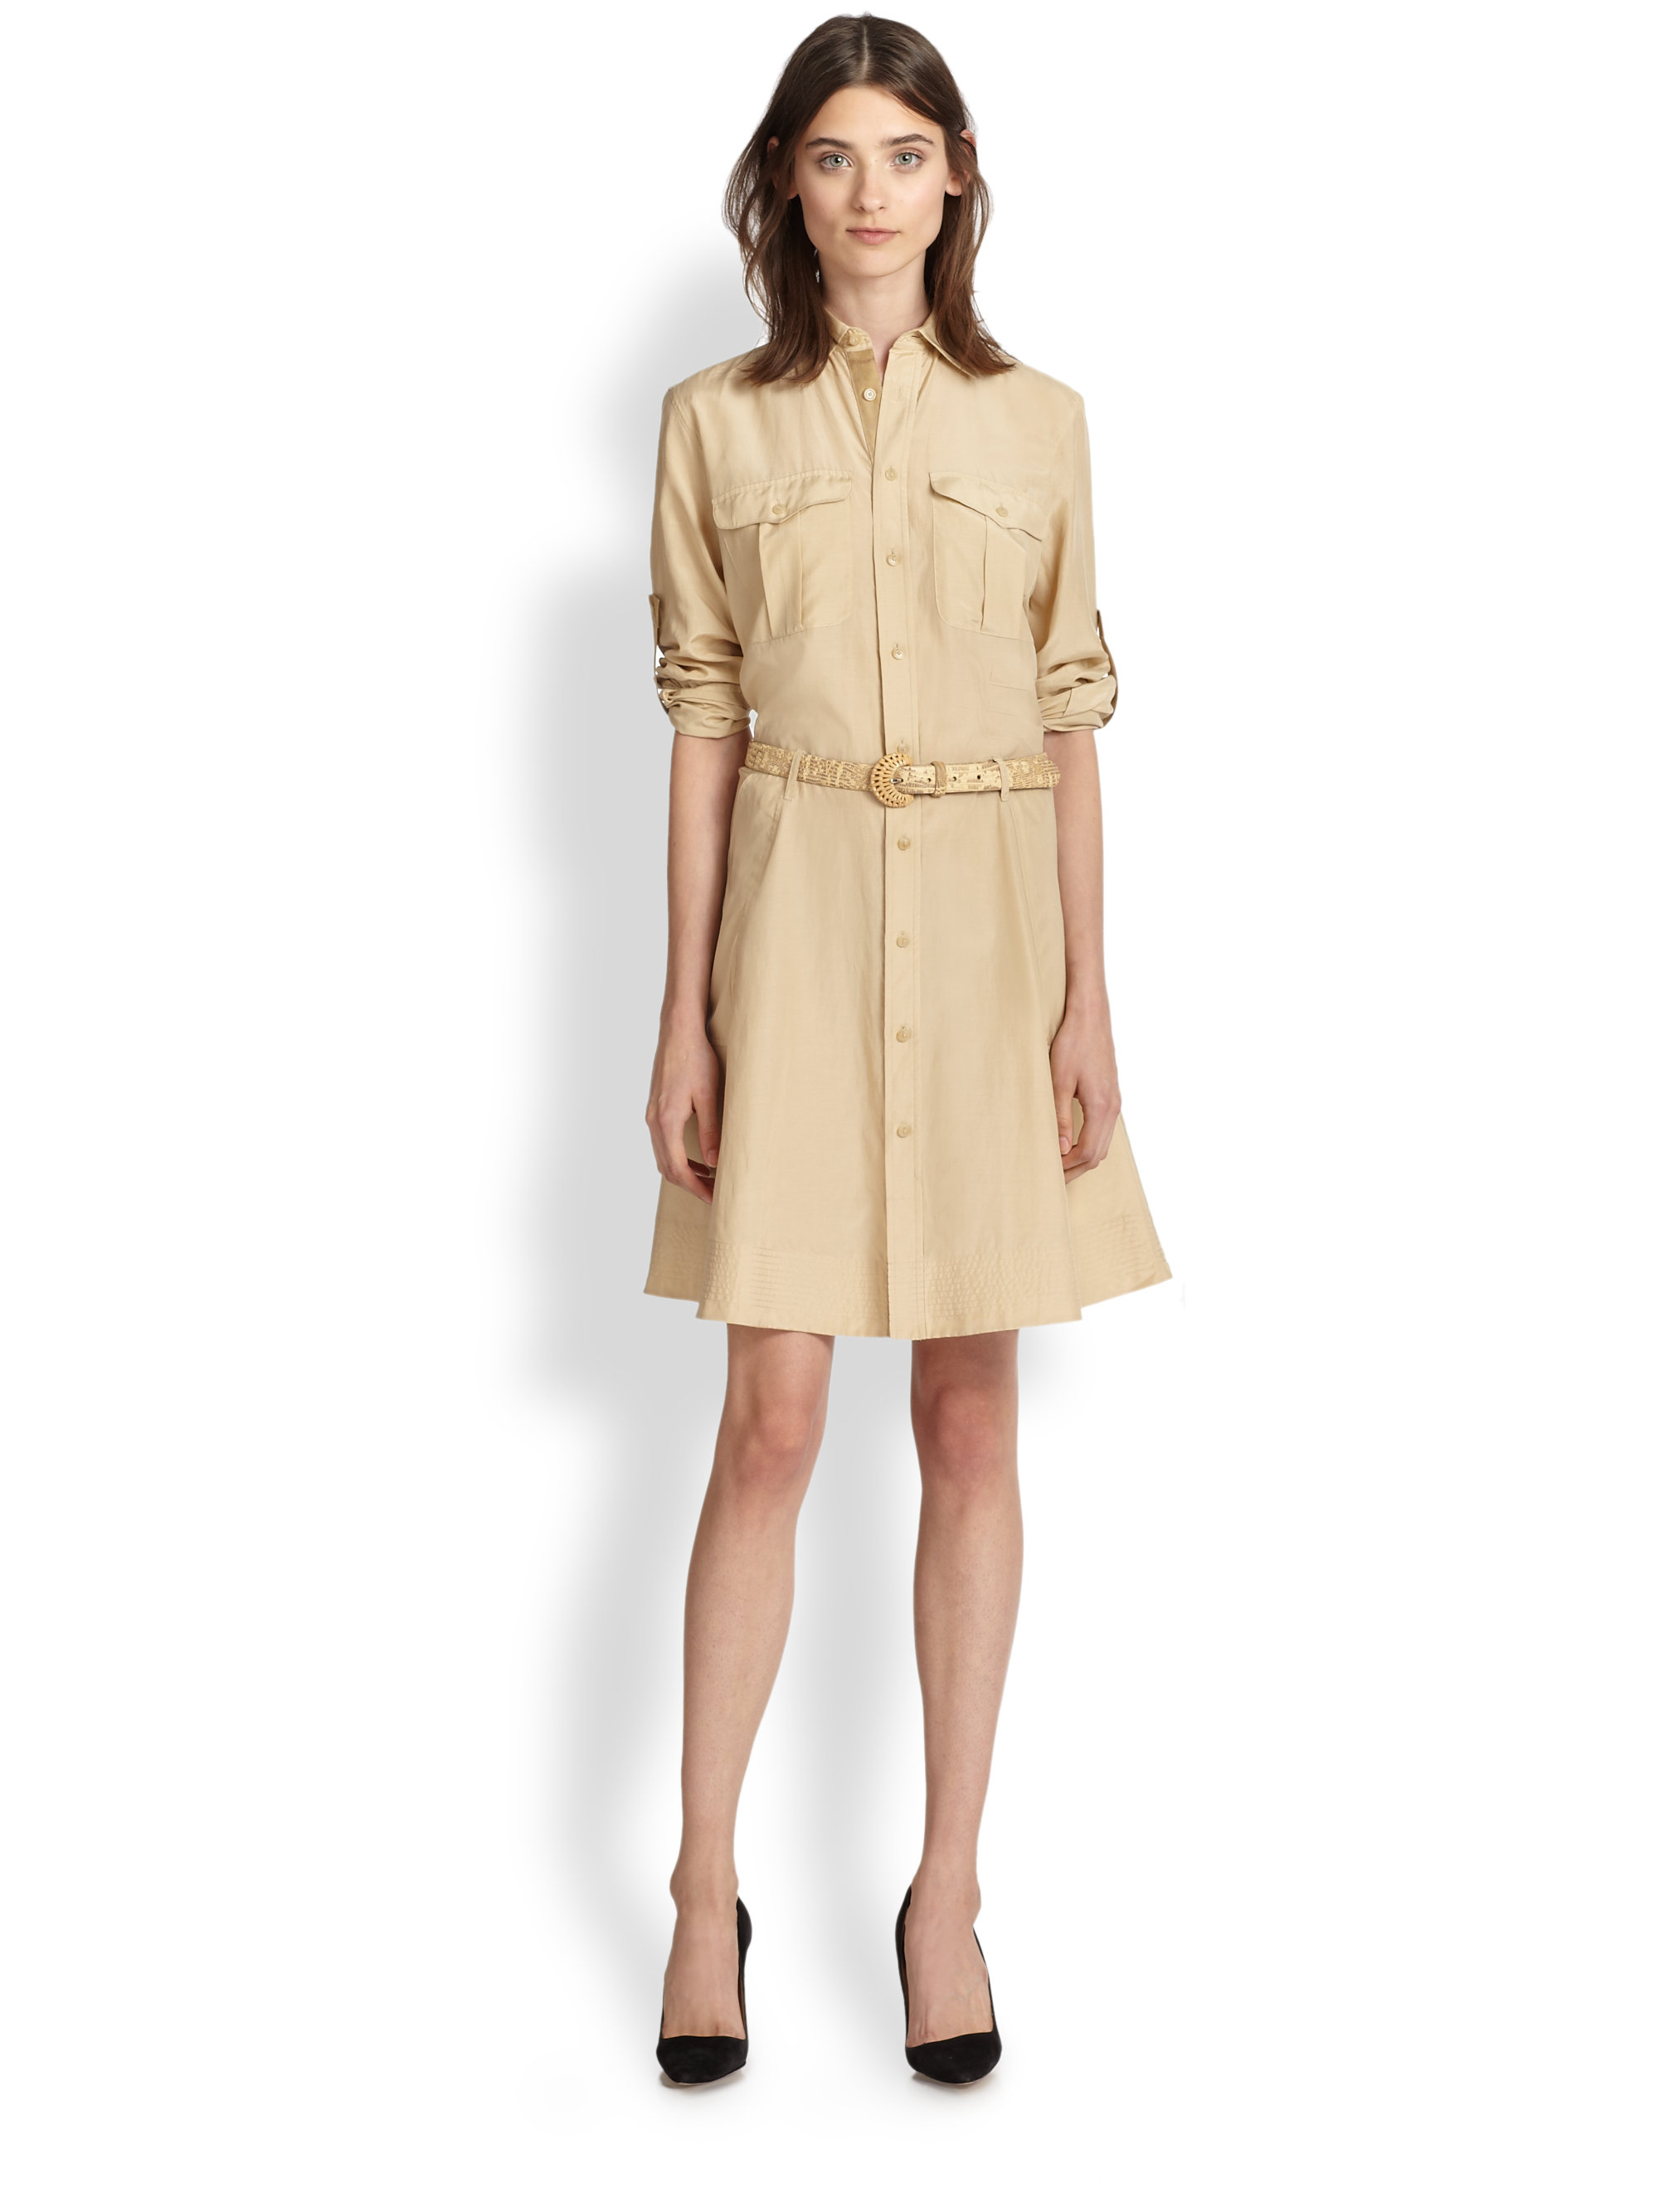 Free shipping on women's shirtdresses at manakamanamobilecenter.tk Shop for T-shirt dresses, denim & silk shirtdresses & more from top brands. Free shipping & returns.